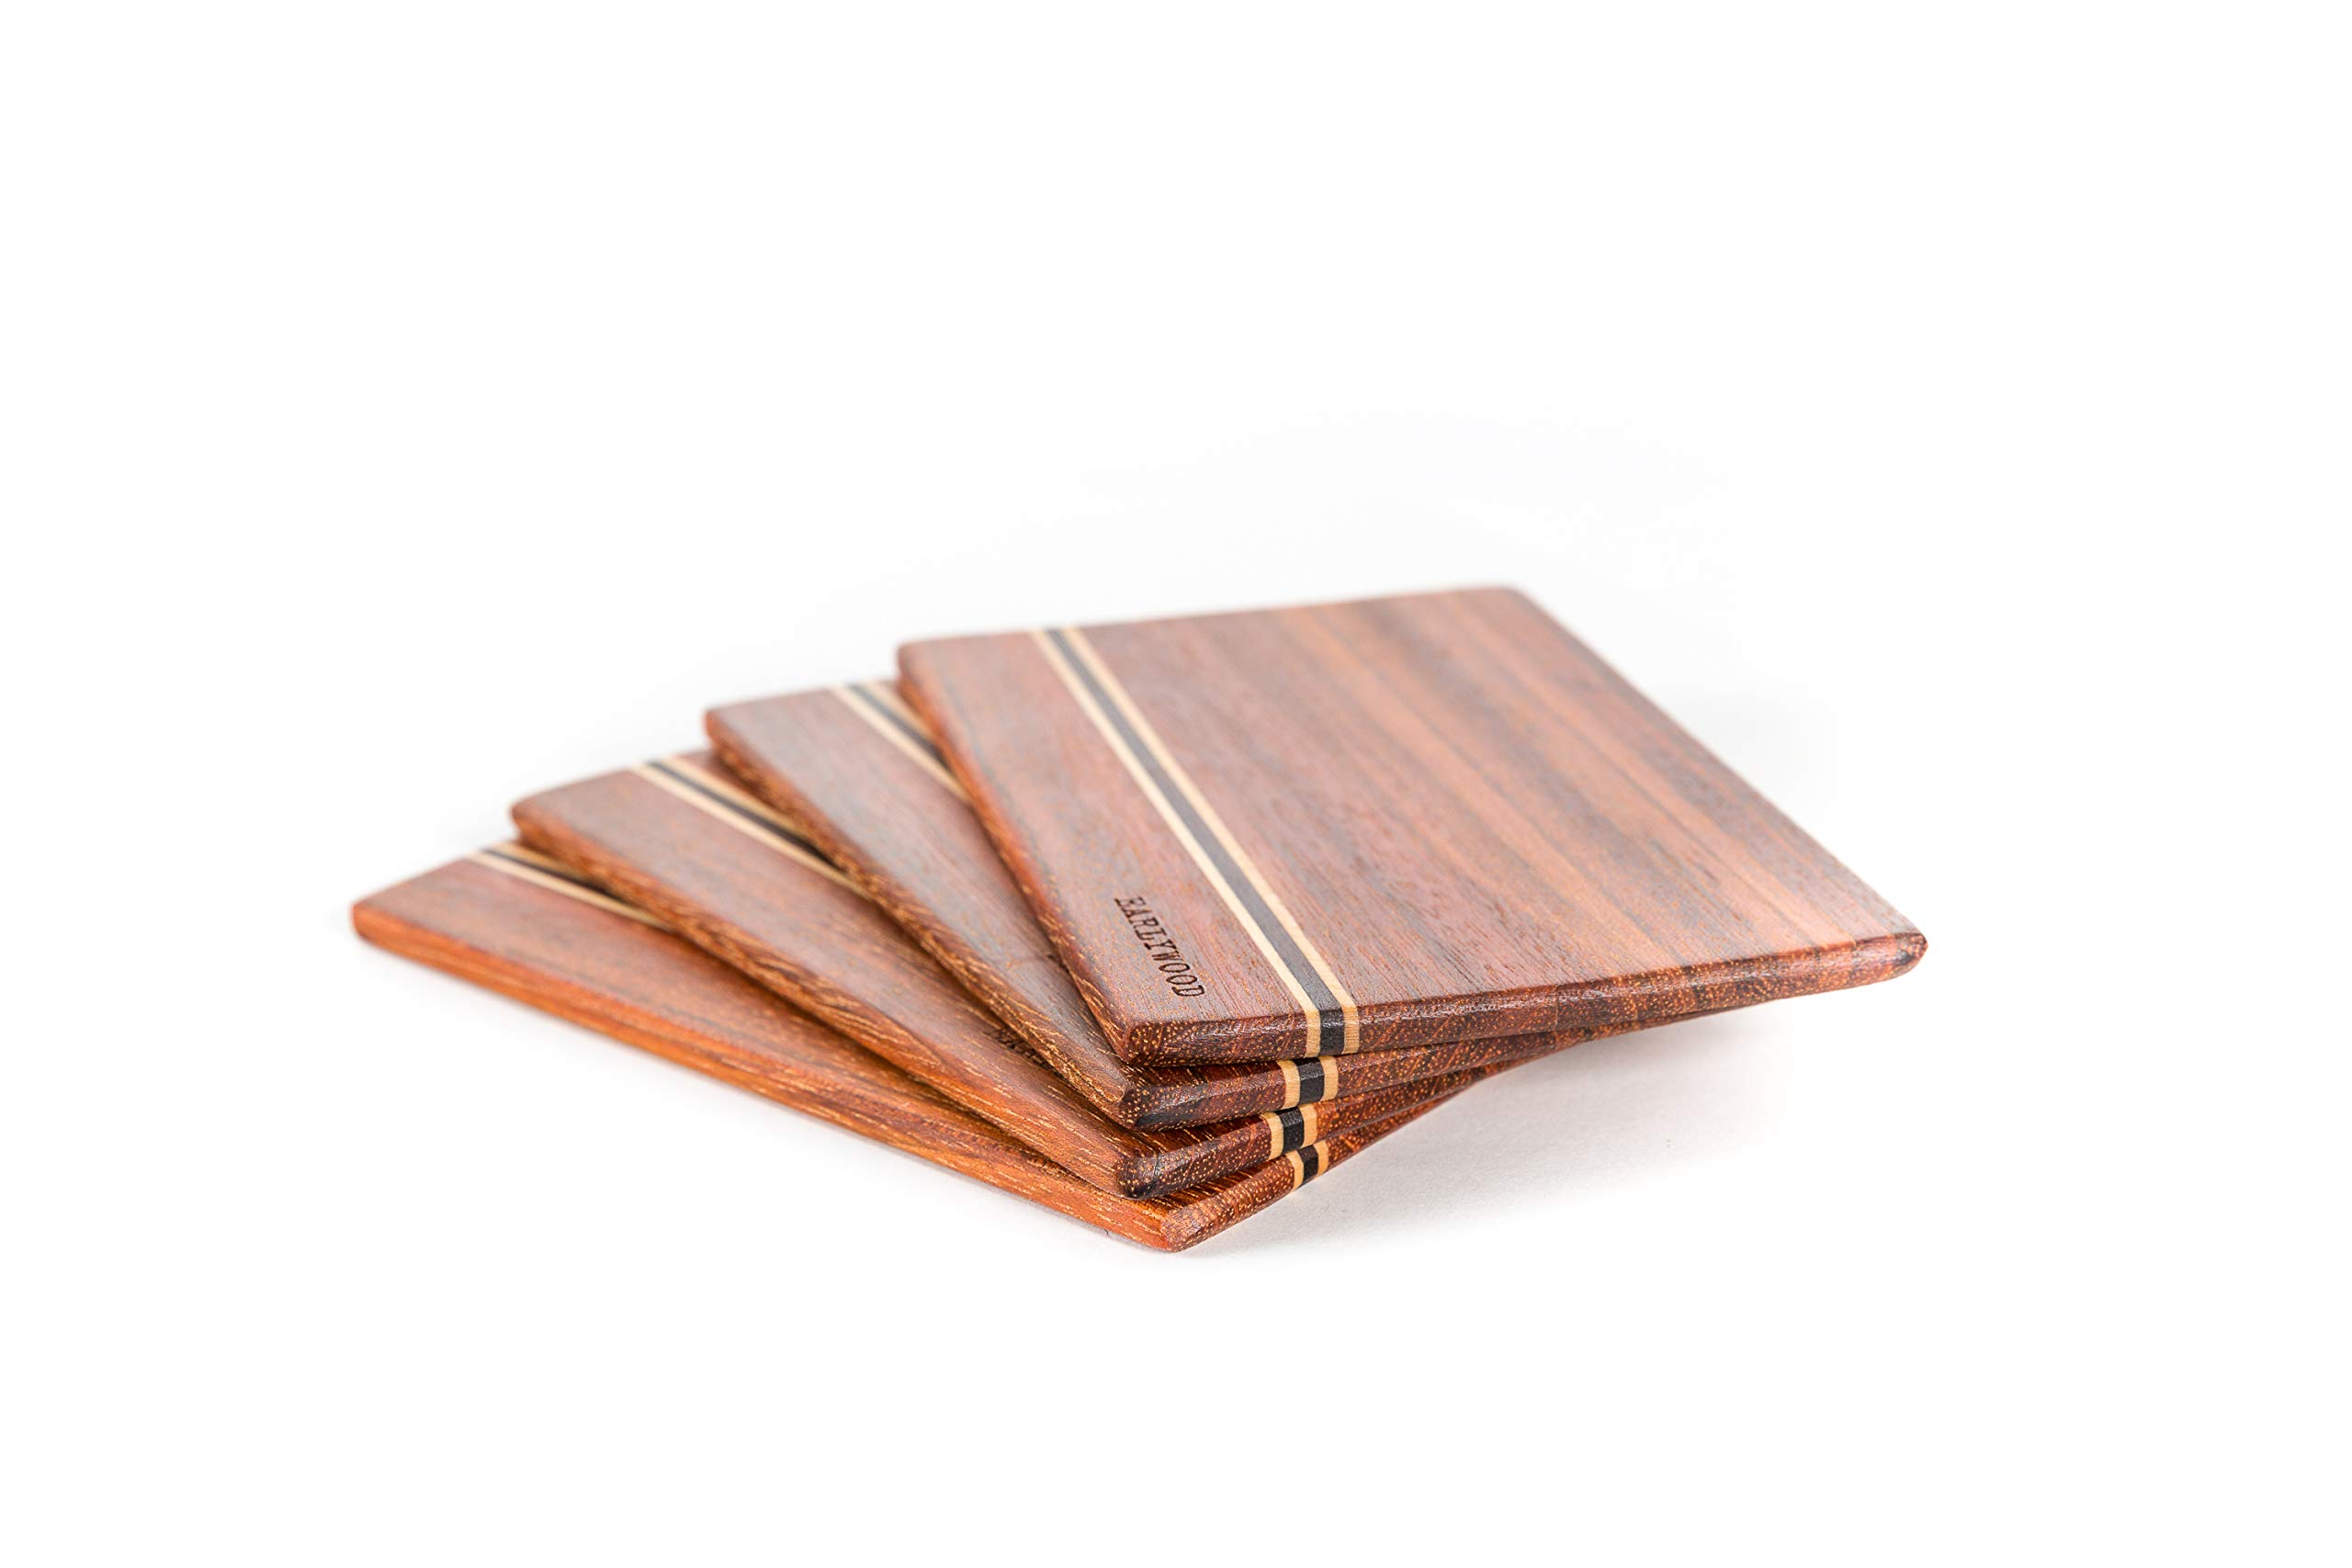 Small Wood Cutting Board Set. Set of 4 mini wooden cutting boards. Light and thin wood serving boards for wood cheese boards, spoon rests, trivets, wood serving set or bar cutting board set. The best!